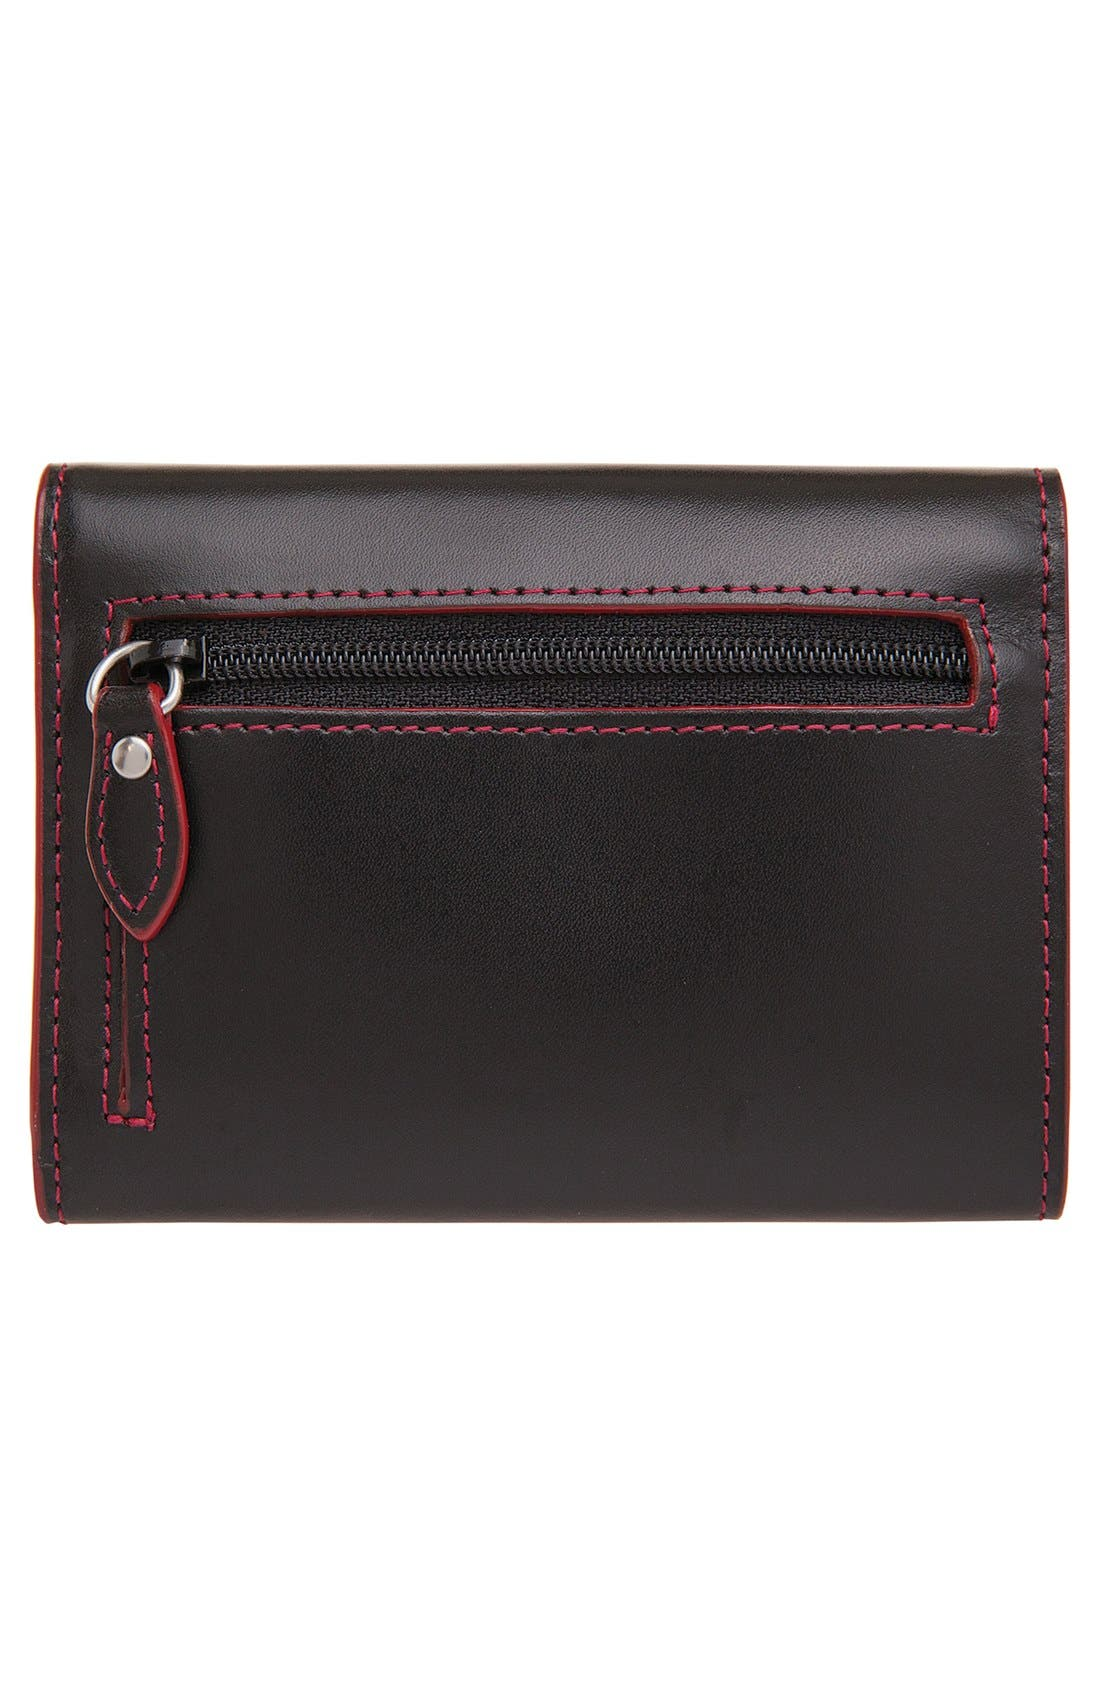 Lodis 'Audrey - Mallory' Leather French Wallet,                             Alternate thumbnail 2, color,                             001